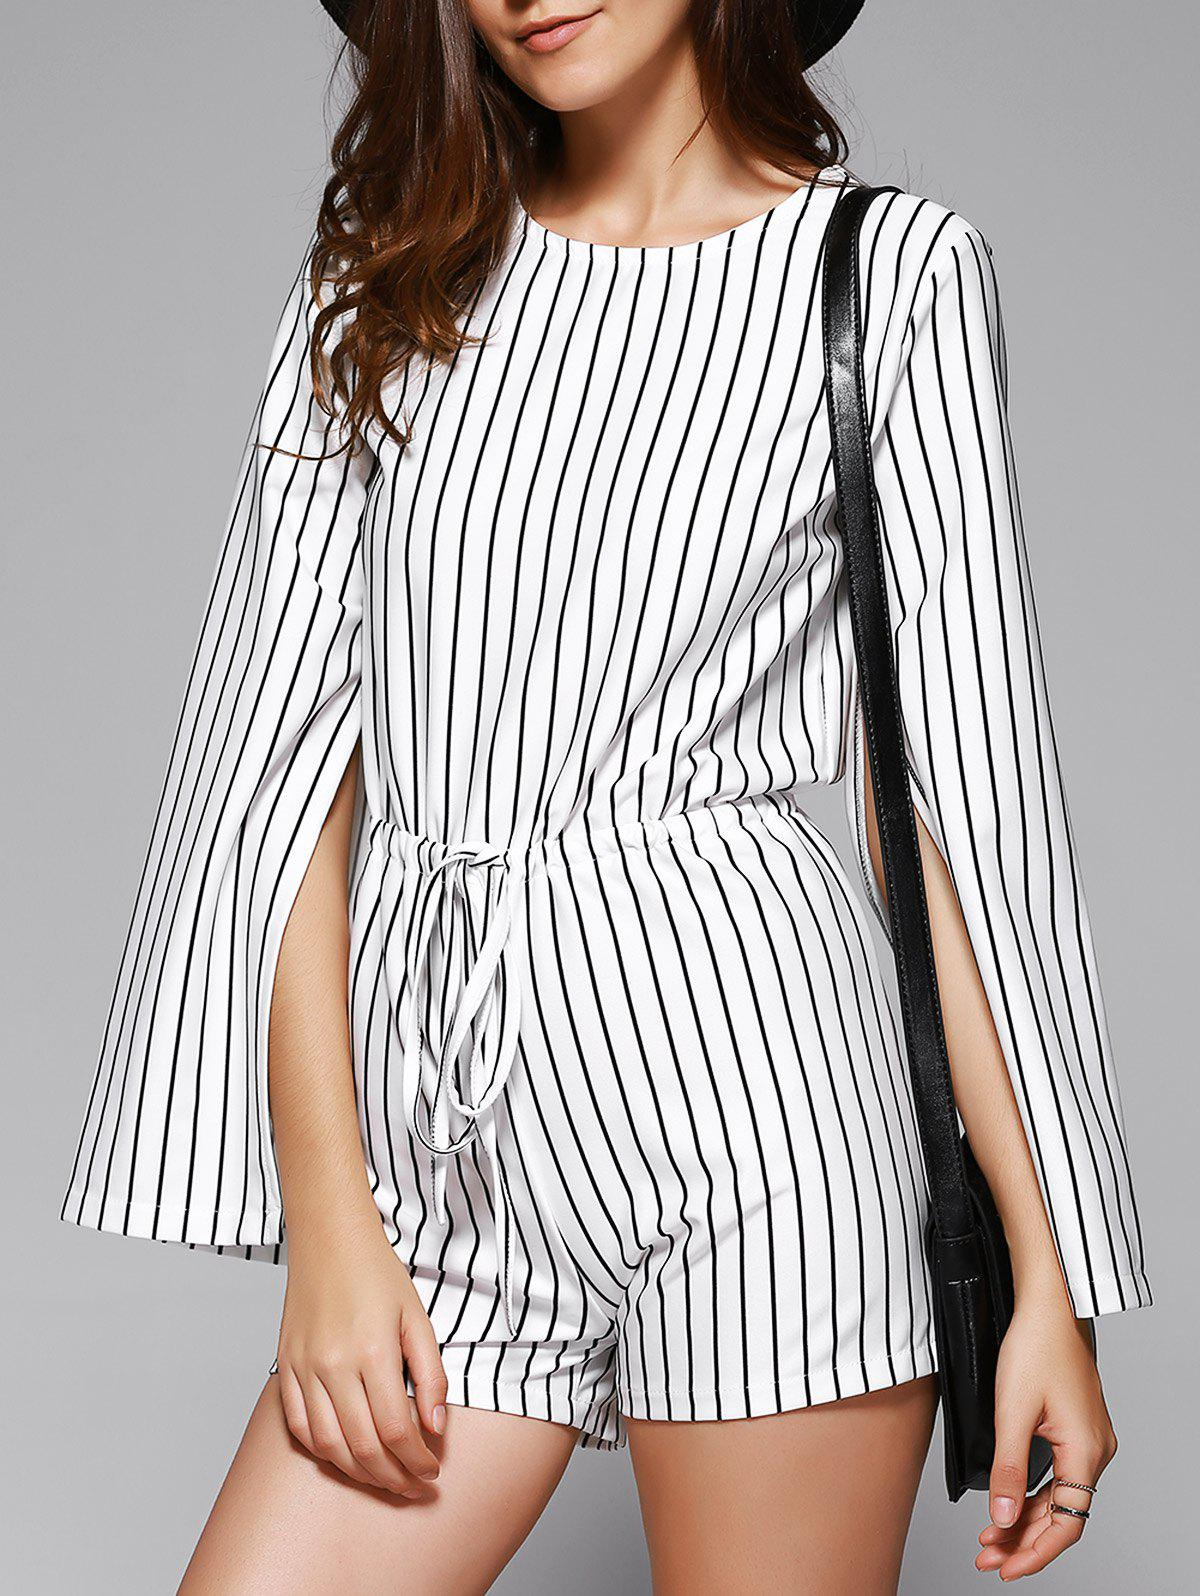 Elegant Women's Striped Cape Sleeve Cut Out Romper - WHITE/BLACK ONE SIZE(FIT SIZE XS TO M)